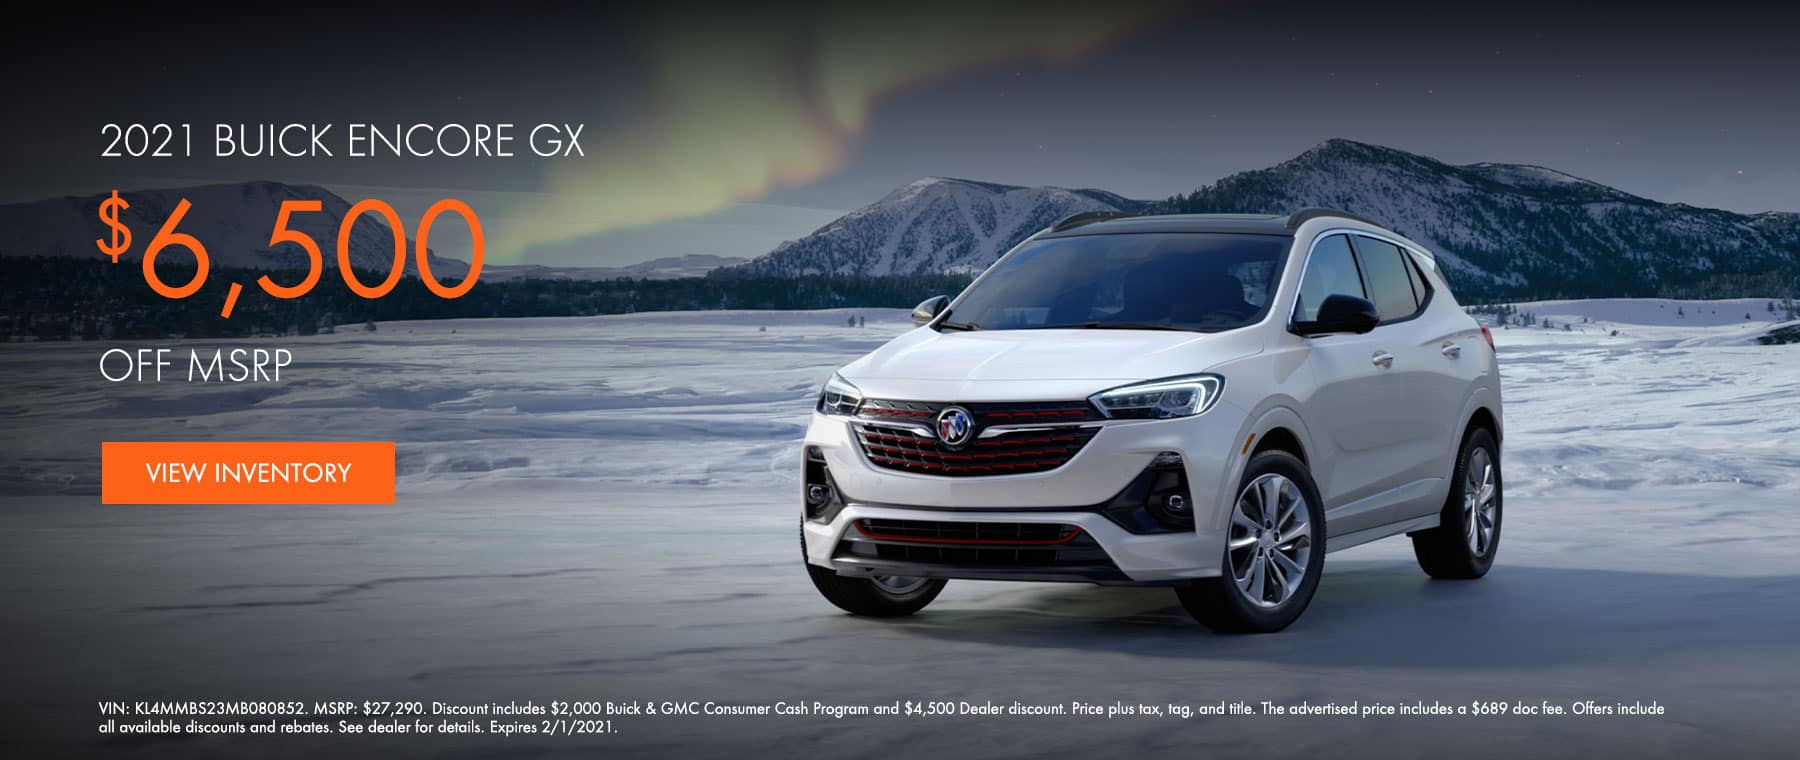 2021 Buick Encore GX $6,500 off MSRP